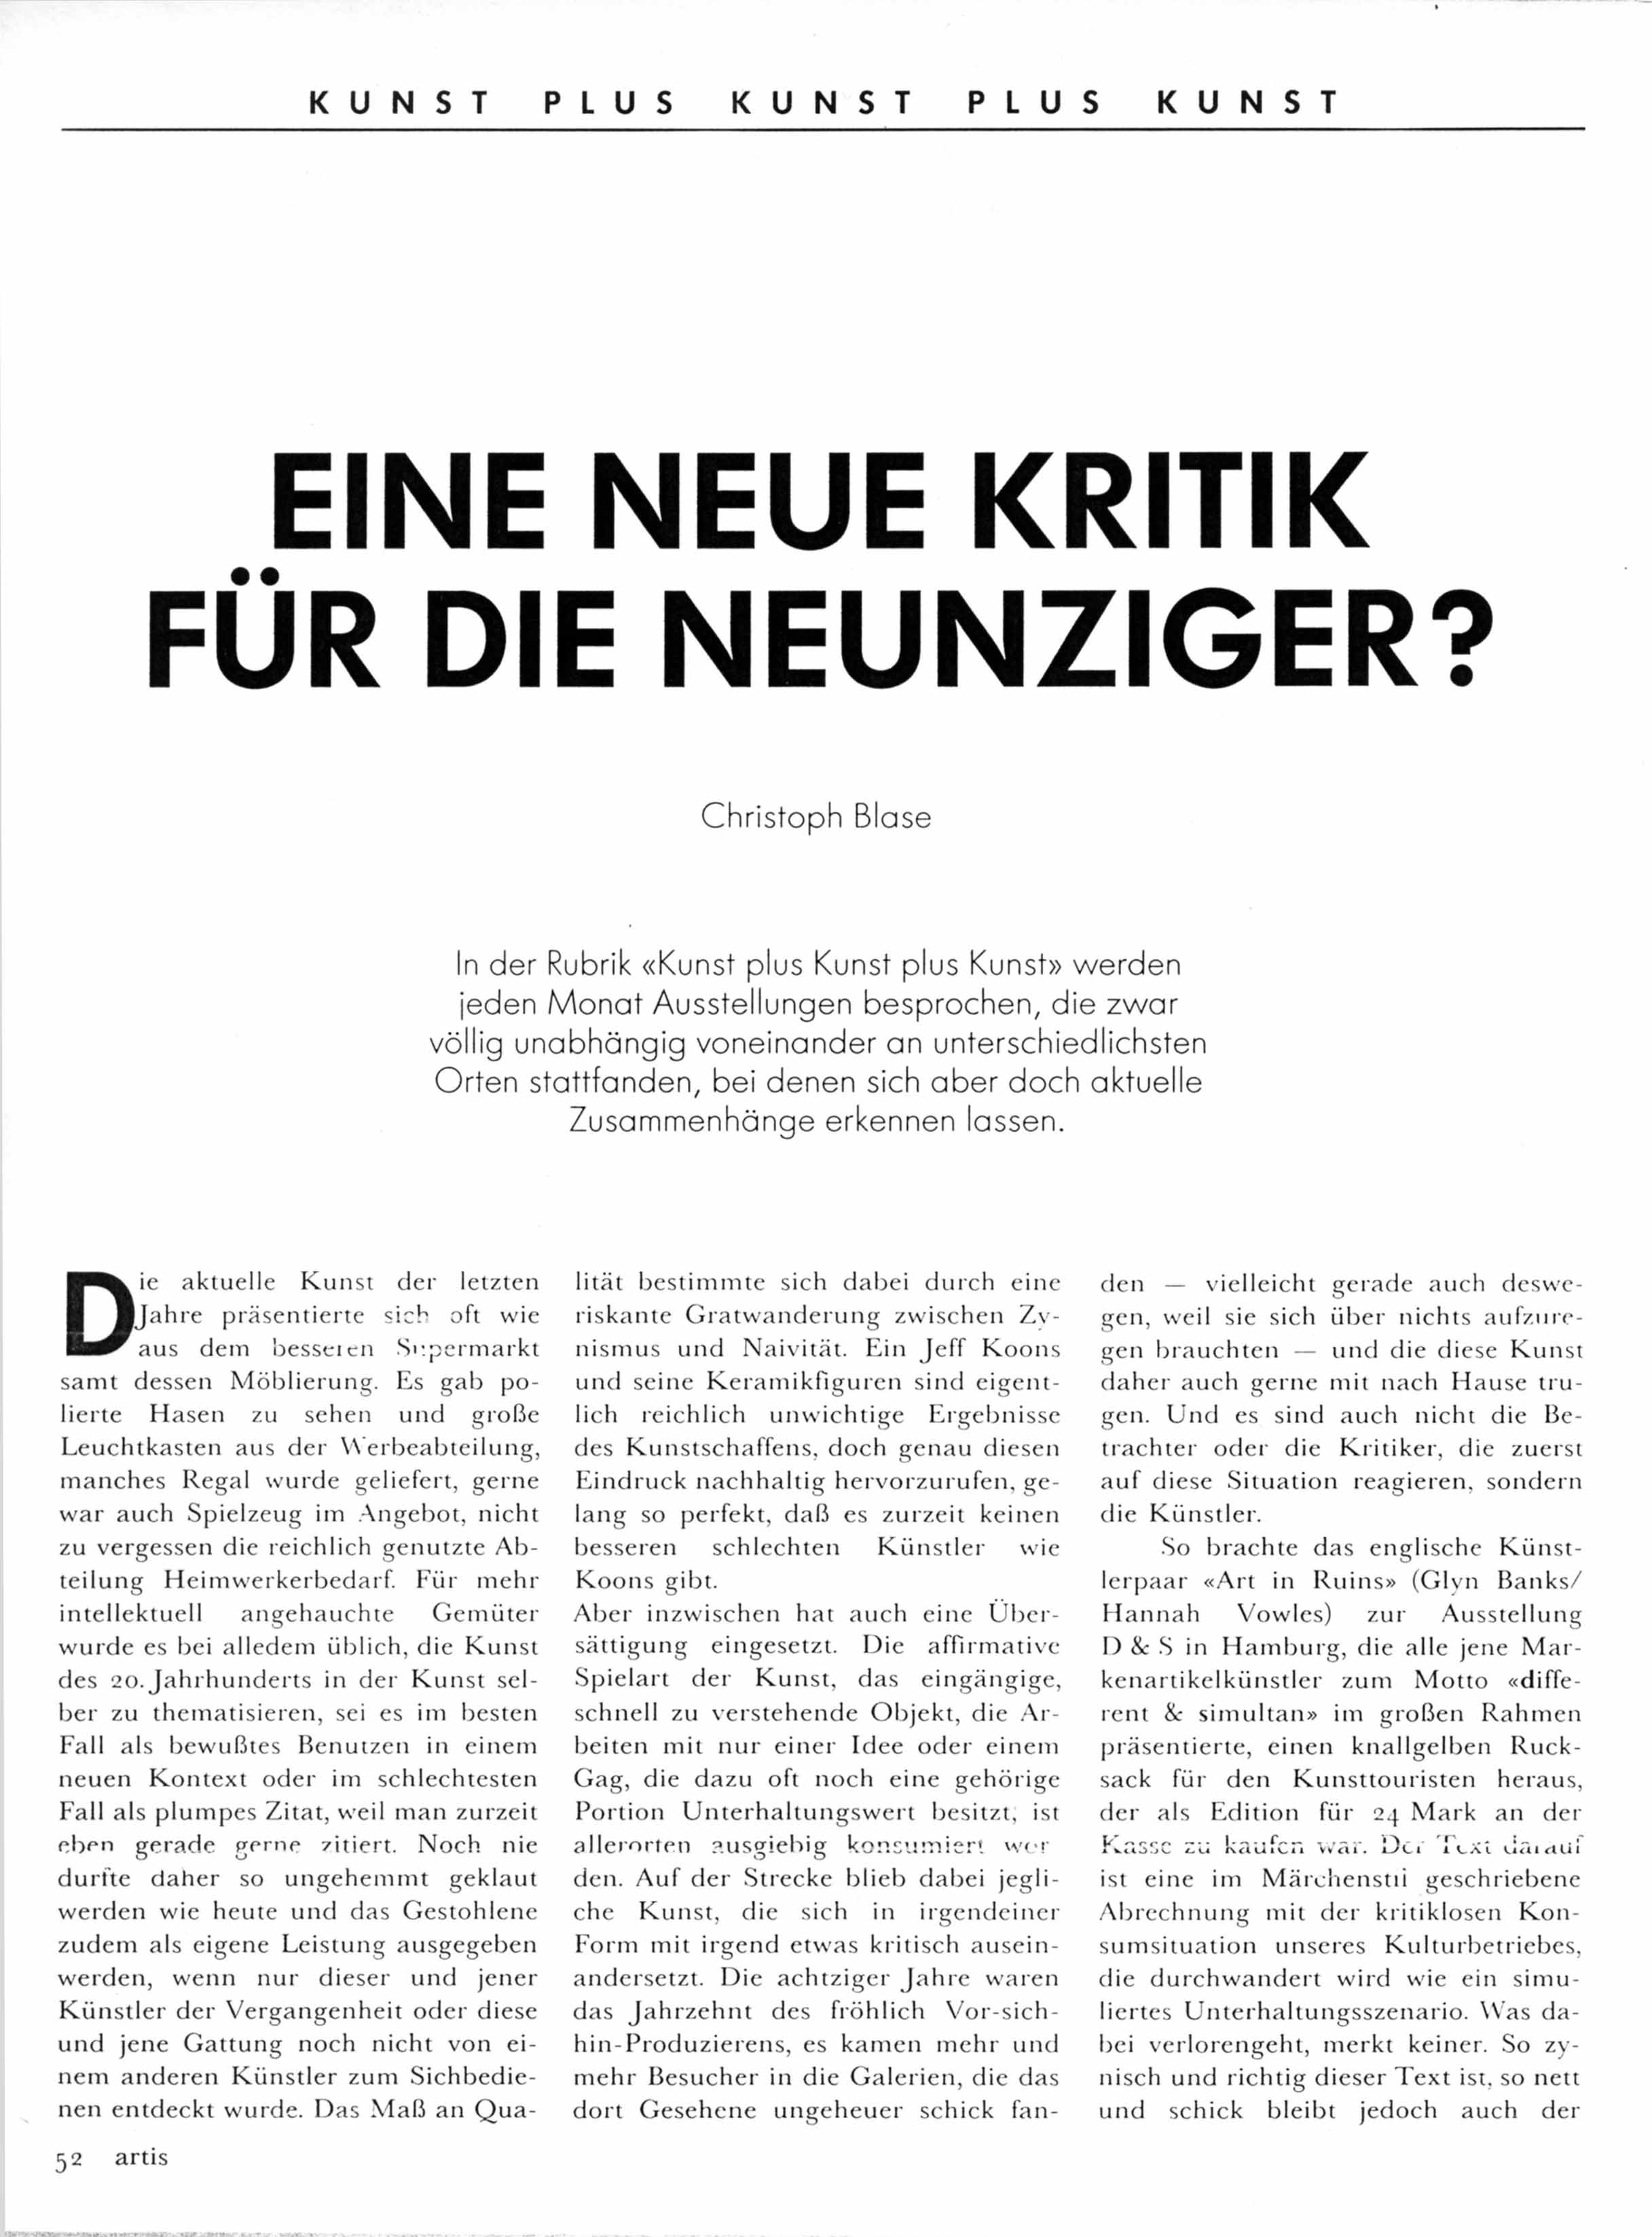 'Eine neue Kritik fur die Neunziger: D & S' Article by Christoph Blase Artis  No 41  Dec 1989 pdf download